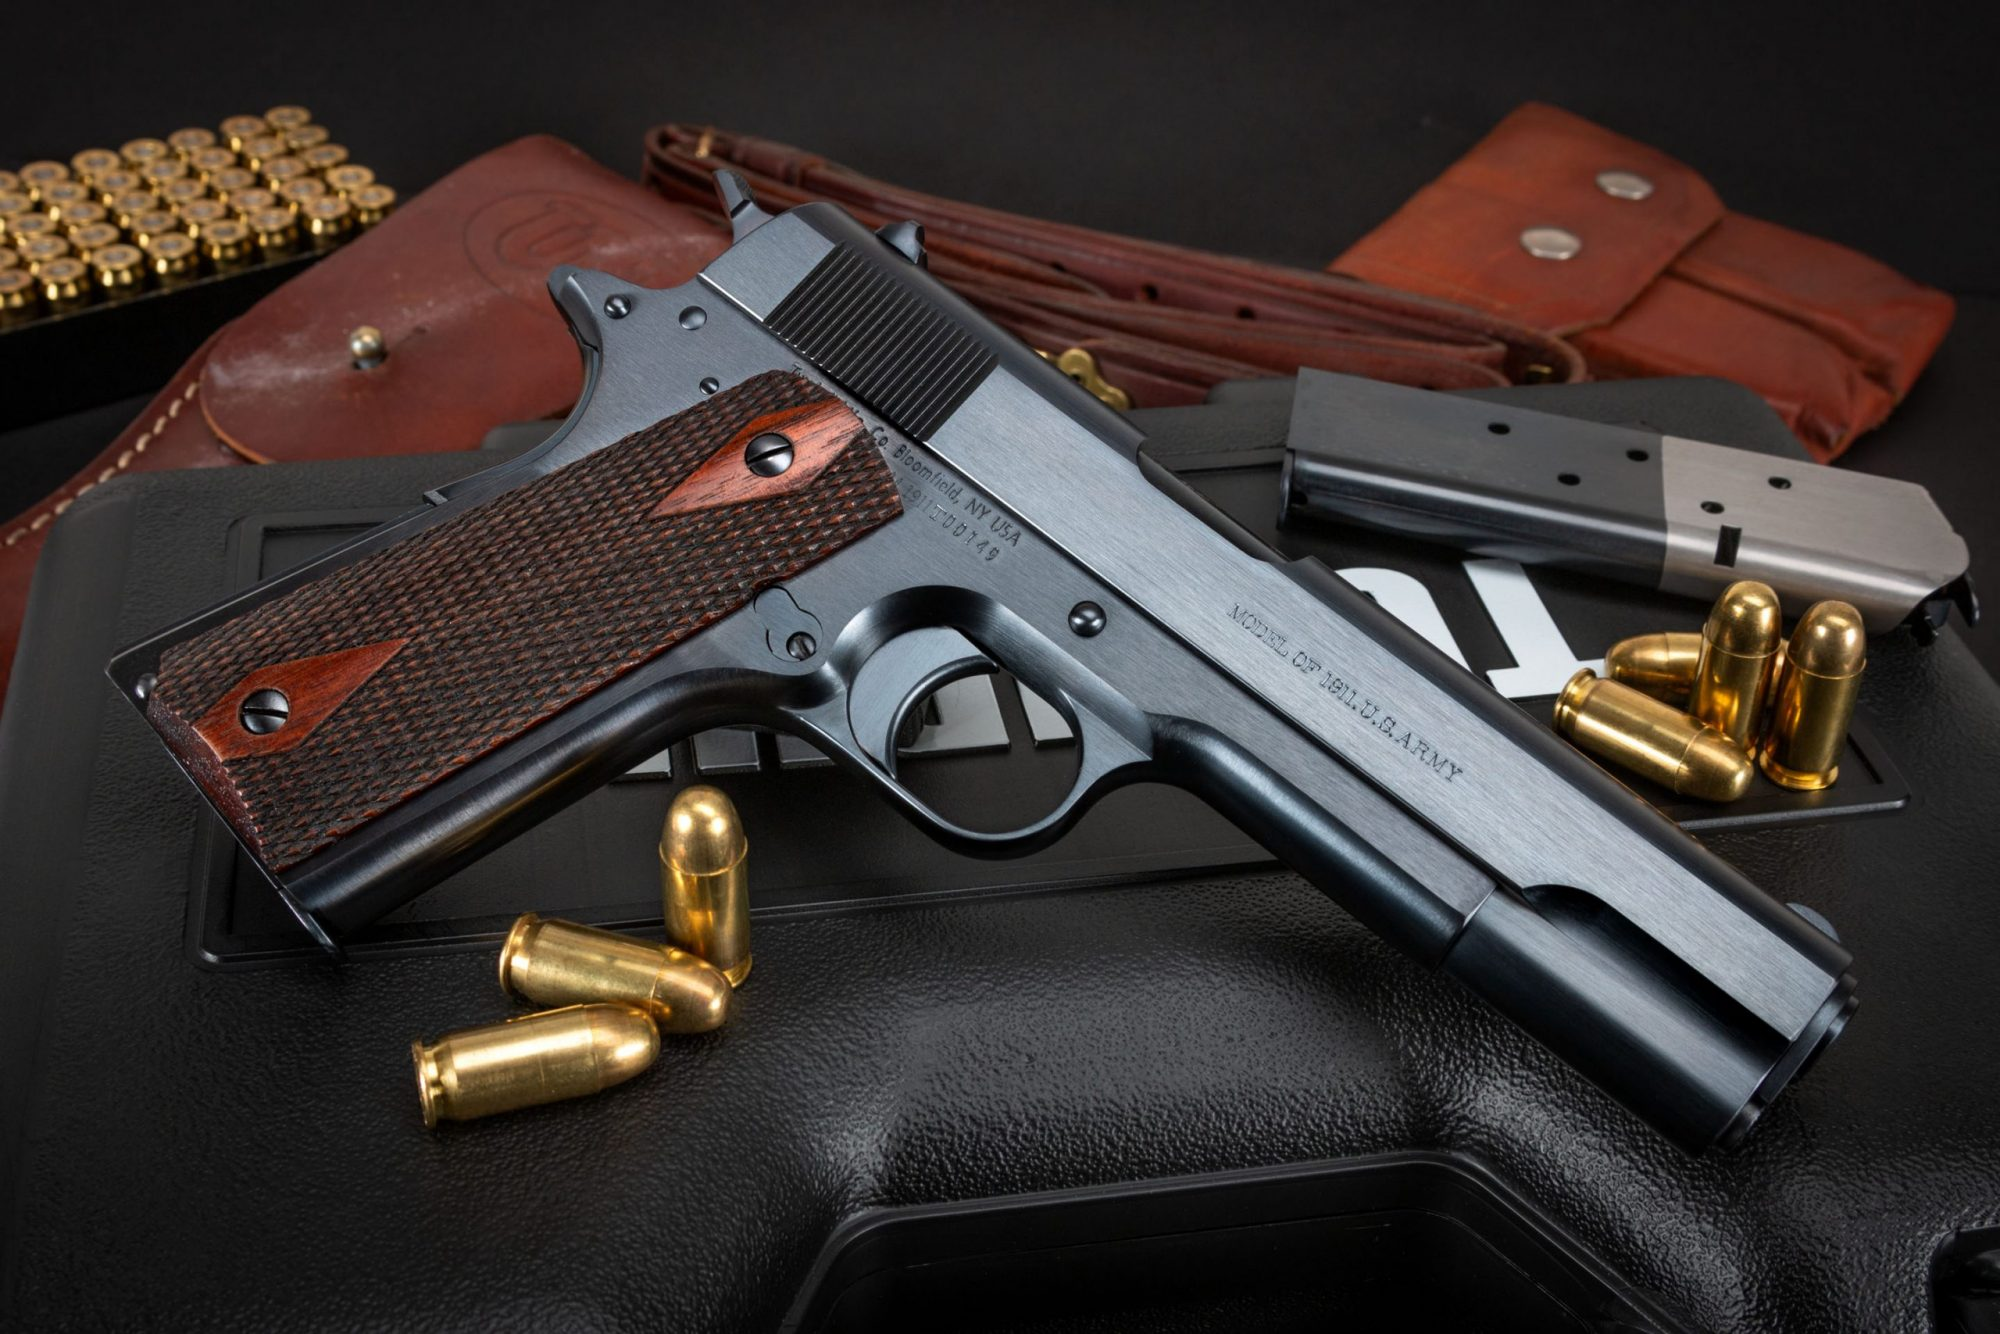 Photo of a Turnbull Model 1911 U.S. Army, a WWI-era Model 1911 reproduction built by Turnbull Restoration the experts of classic Model 1911 restoration